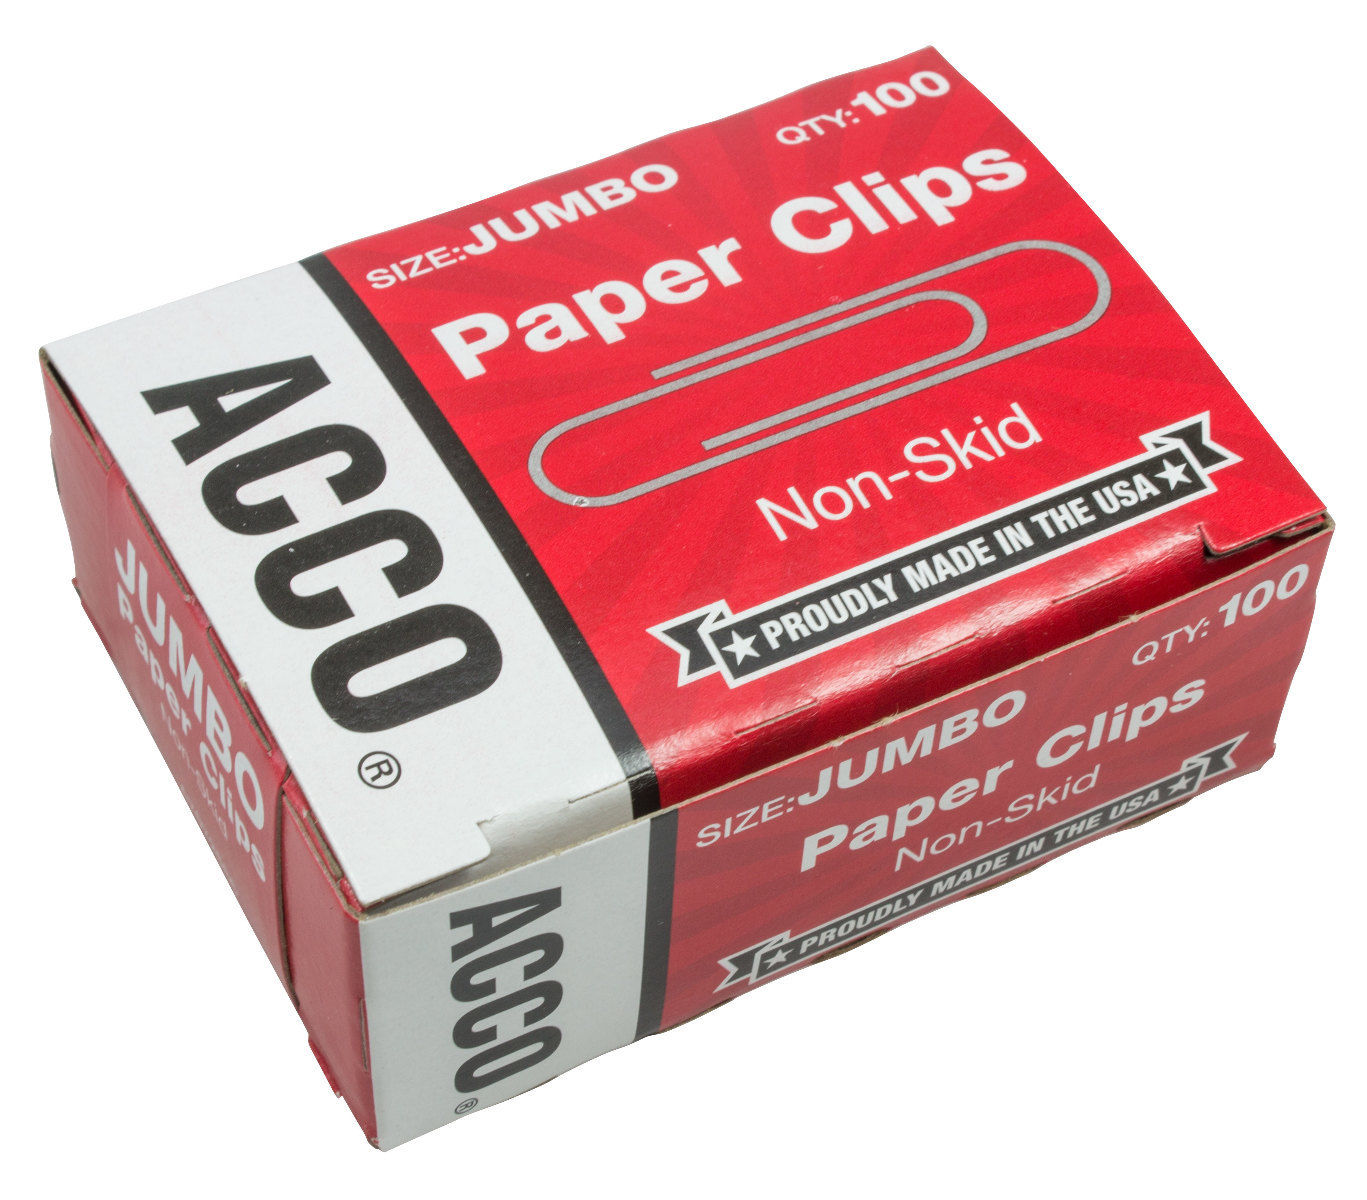 acco paper clips jumbo non-skid 100 count - 10 pack a7072585 - save